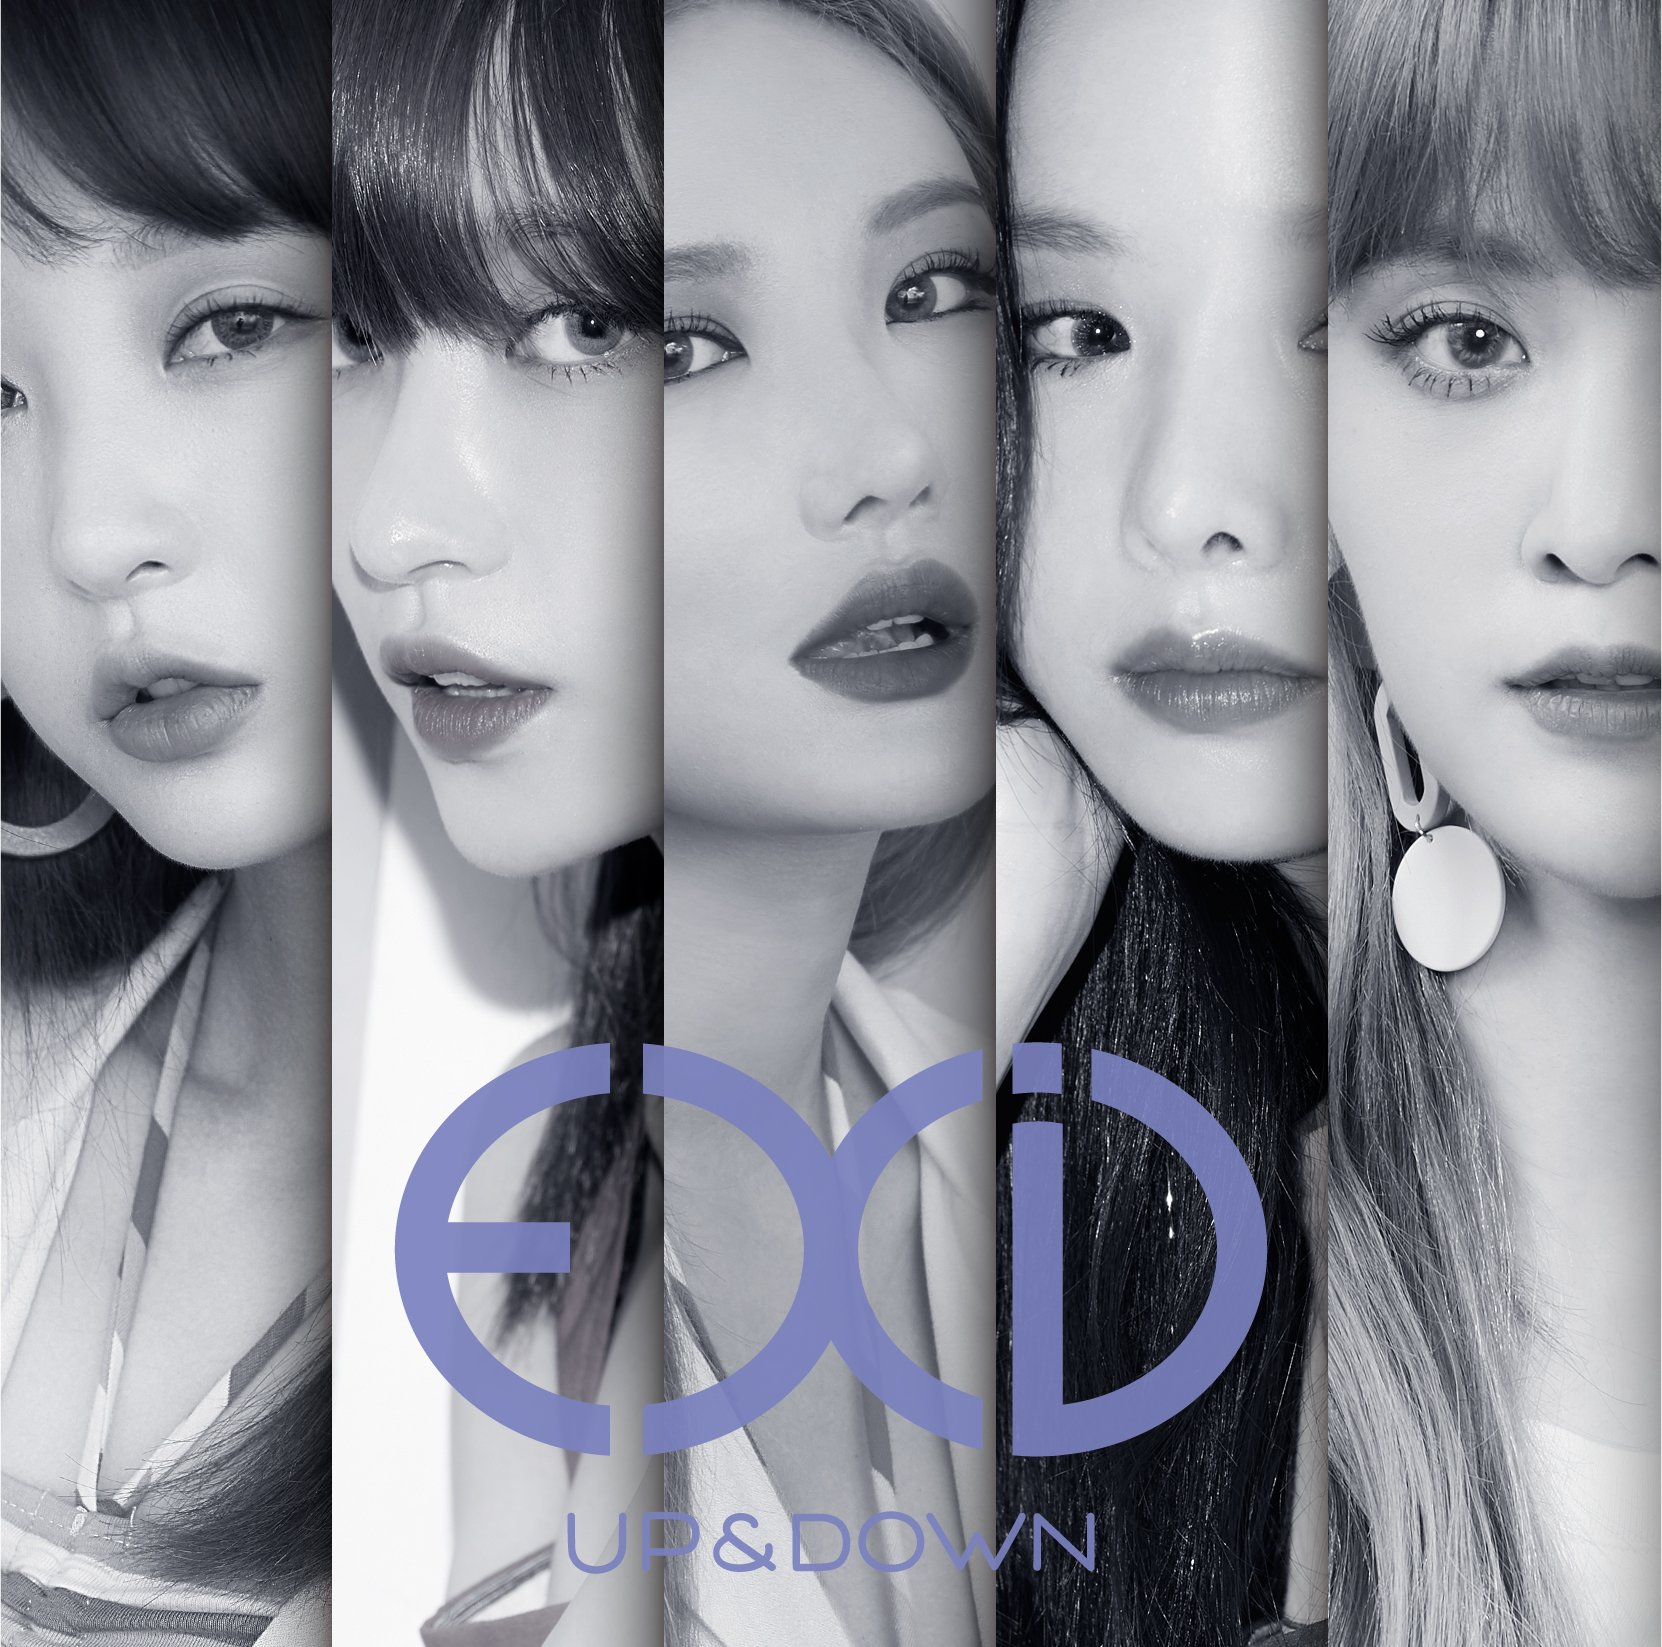 CD : Exid - Up&down (version B) (With DVD, Japan - Import, 2PC)